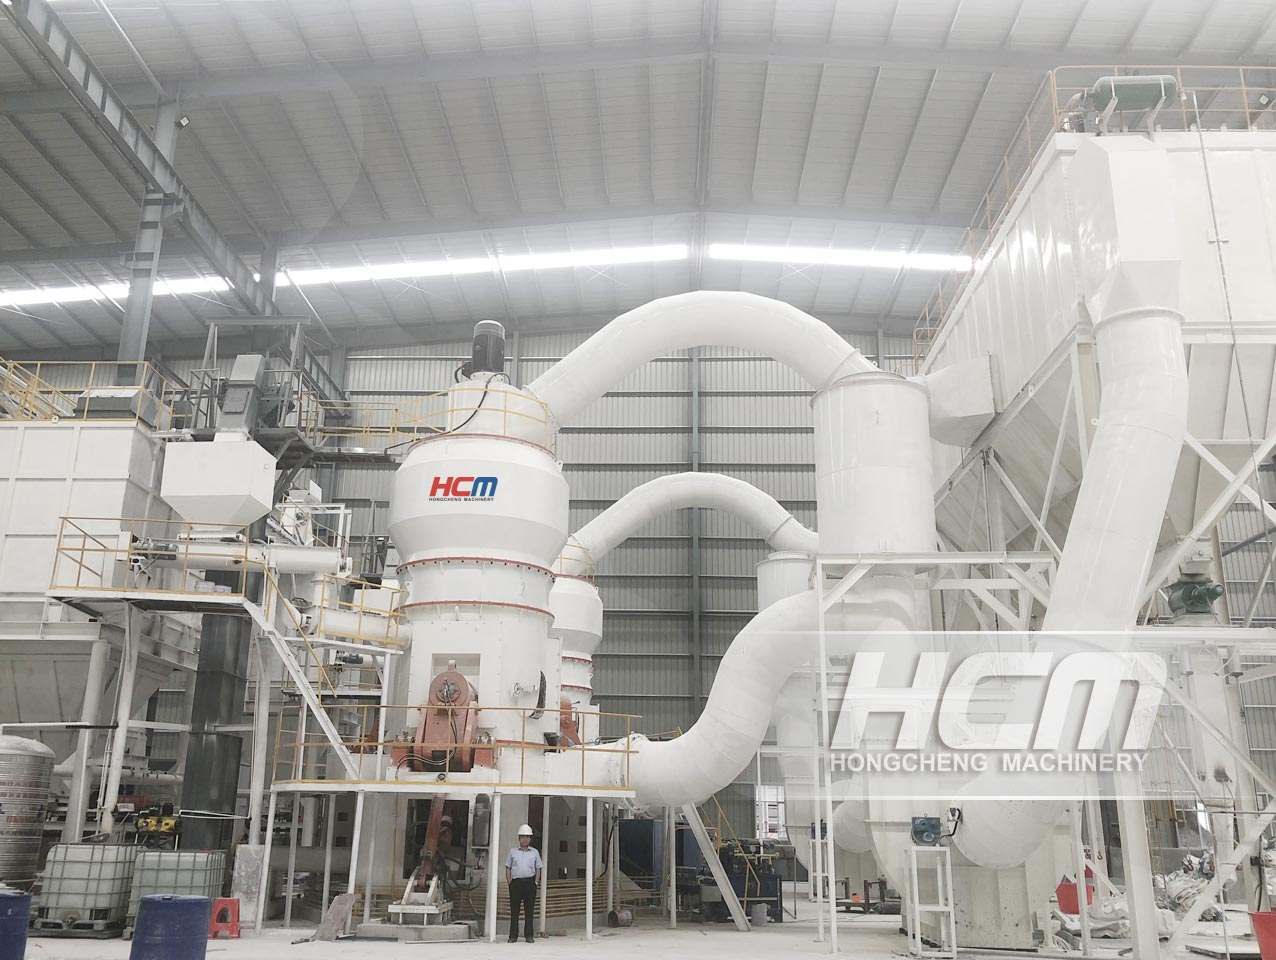 SUPERFINE ARTIFICIAL STONE MILL GRINDER MACHINE HLMX